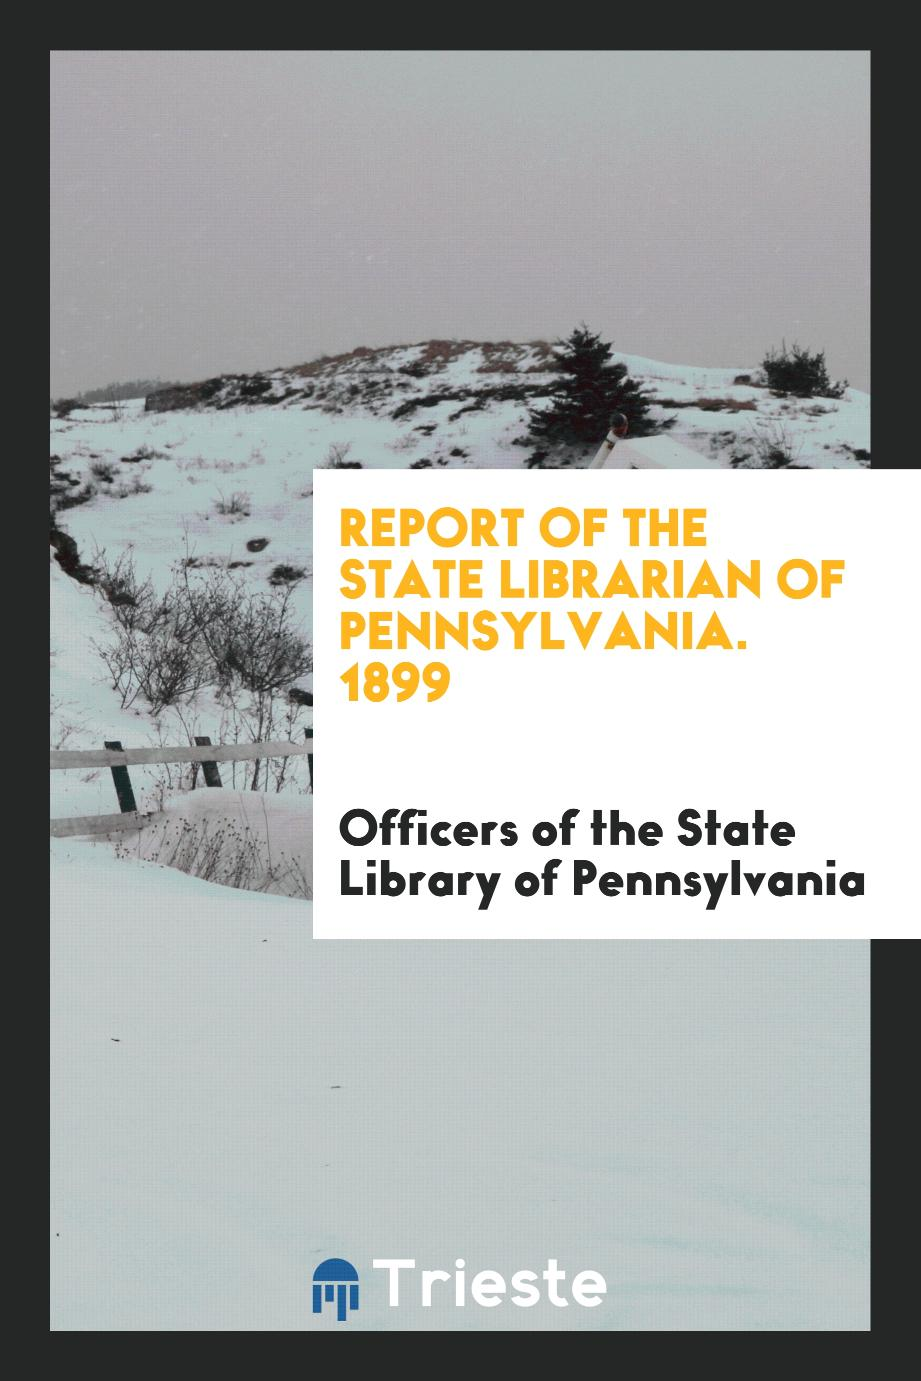 Report of the State Librarian of Pennsylvania. 1899